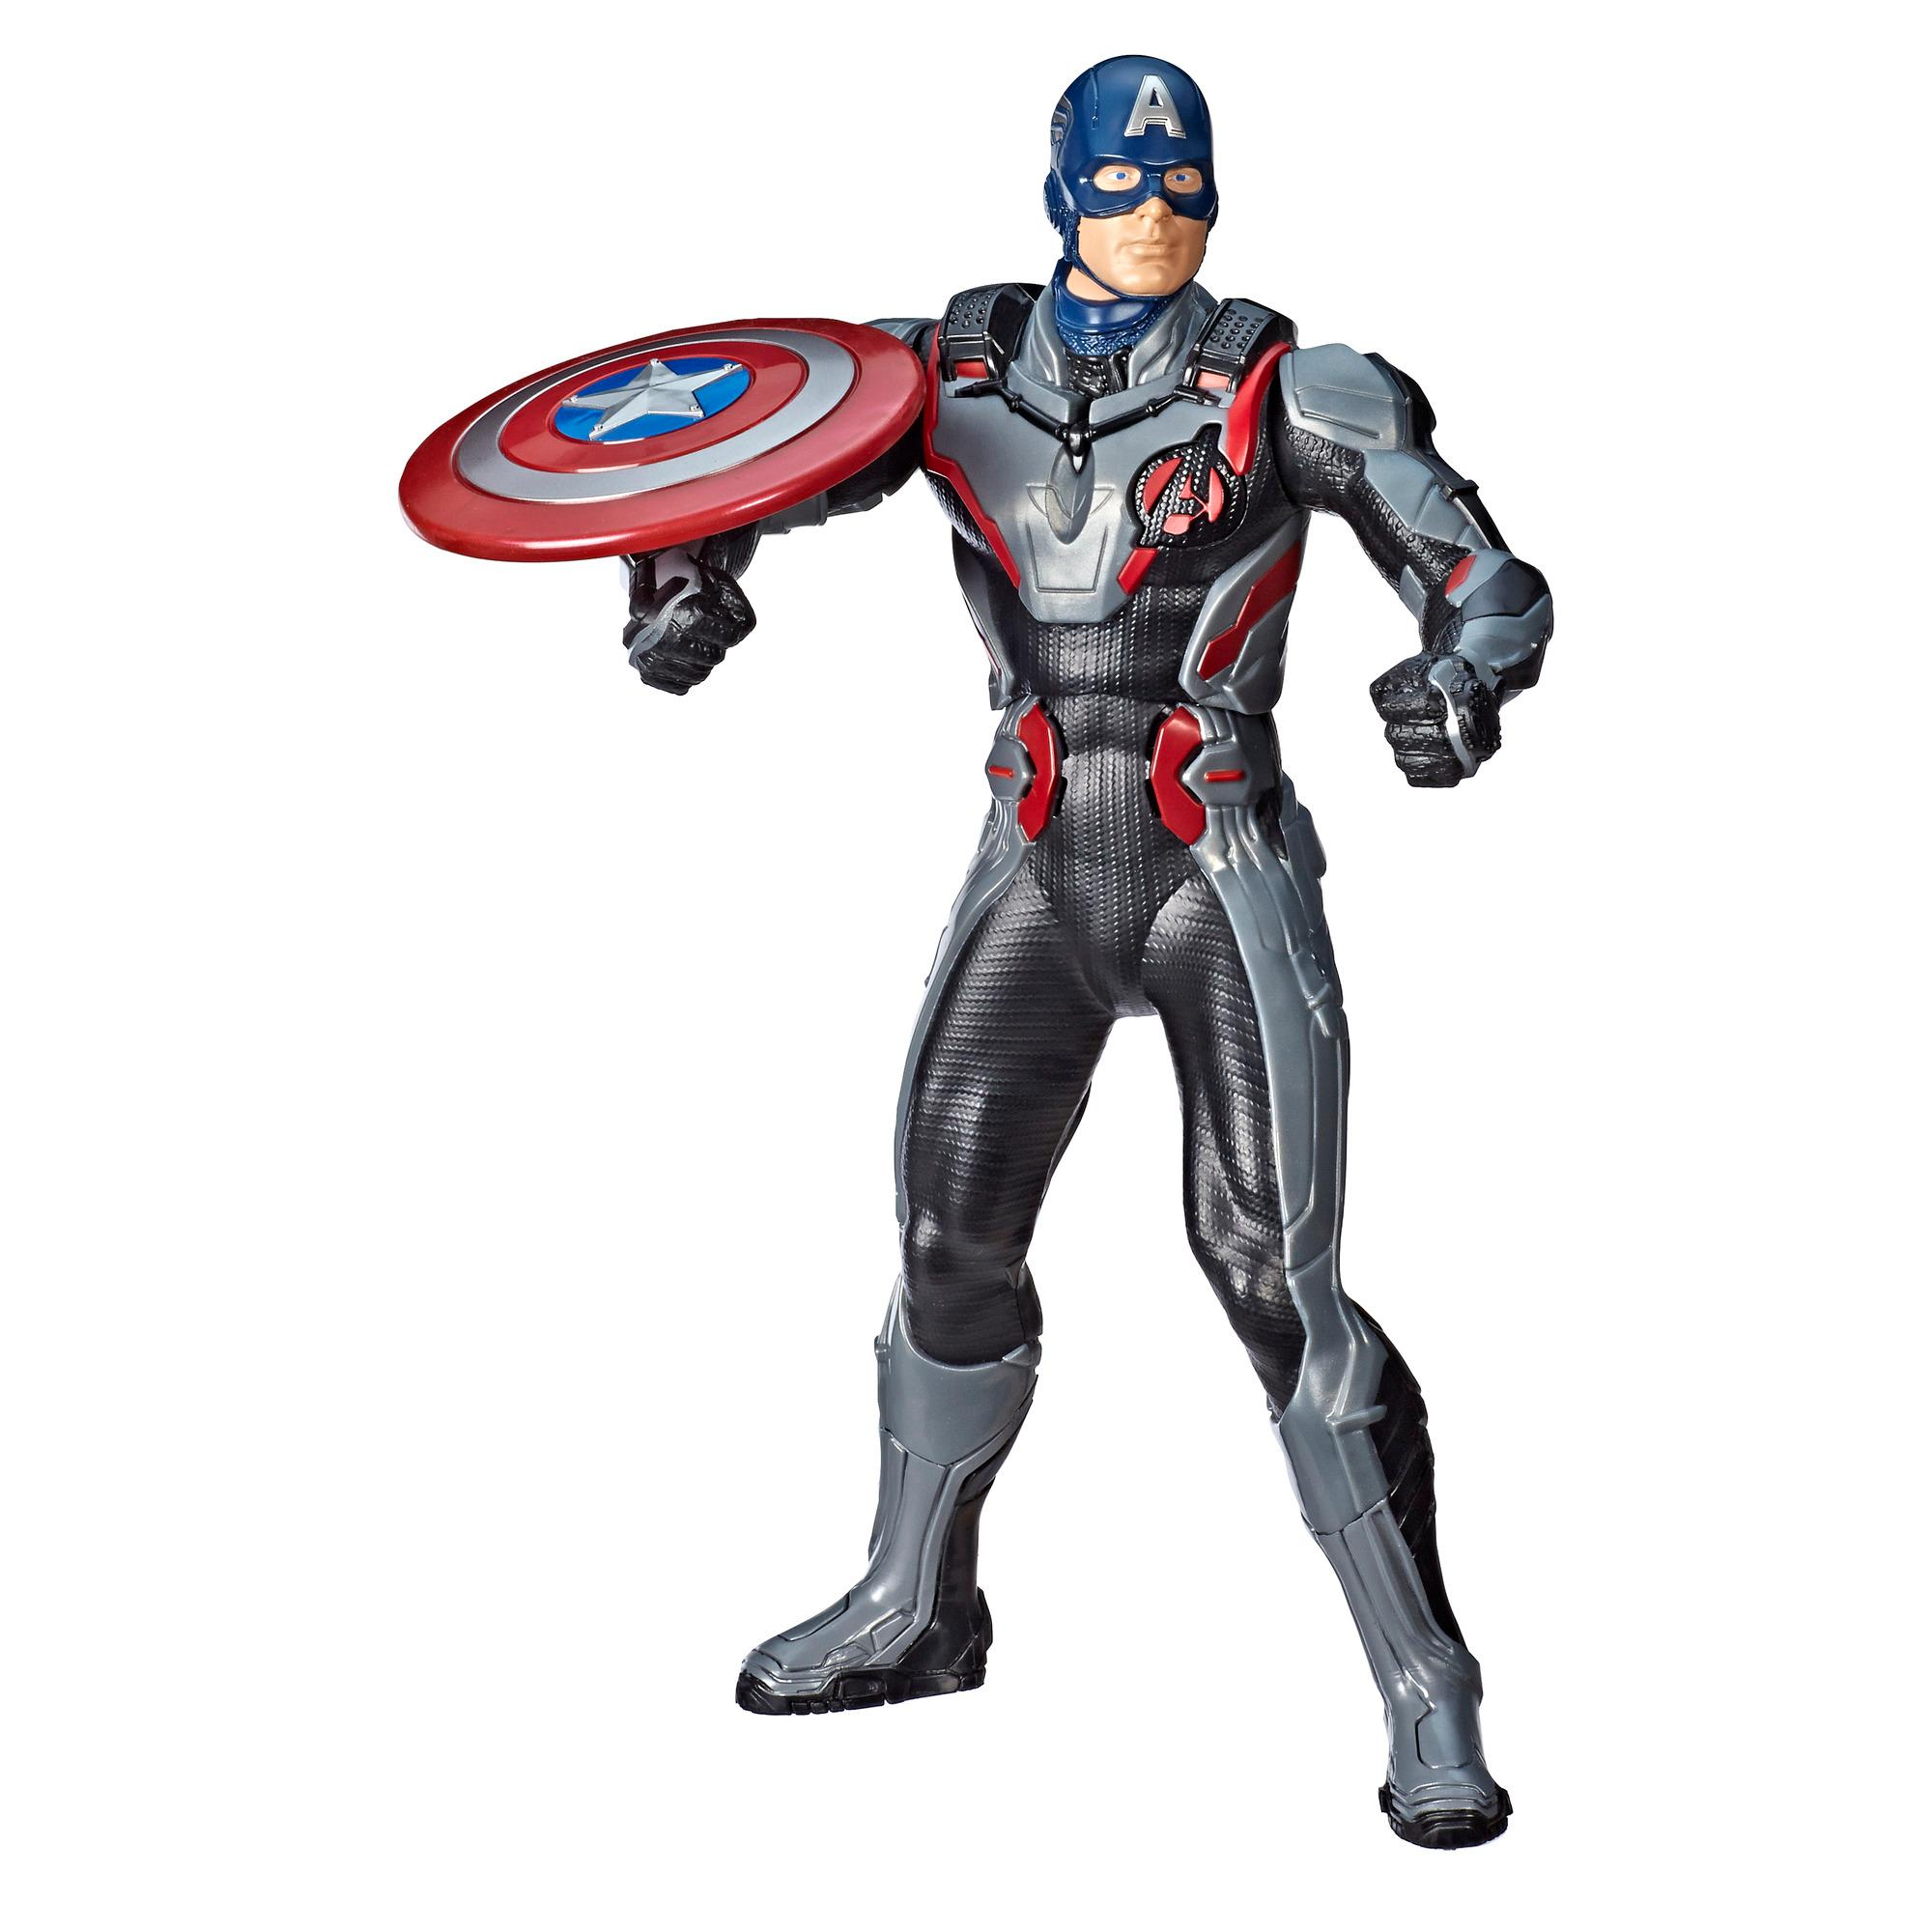 Marvel Avengers: Endgame Shield Blast Captain America 13-Inch Figure